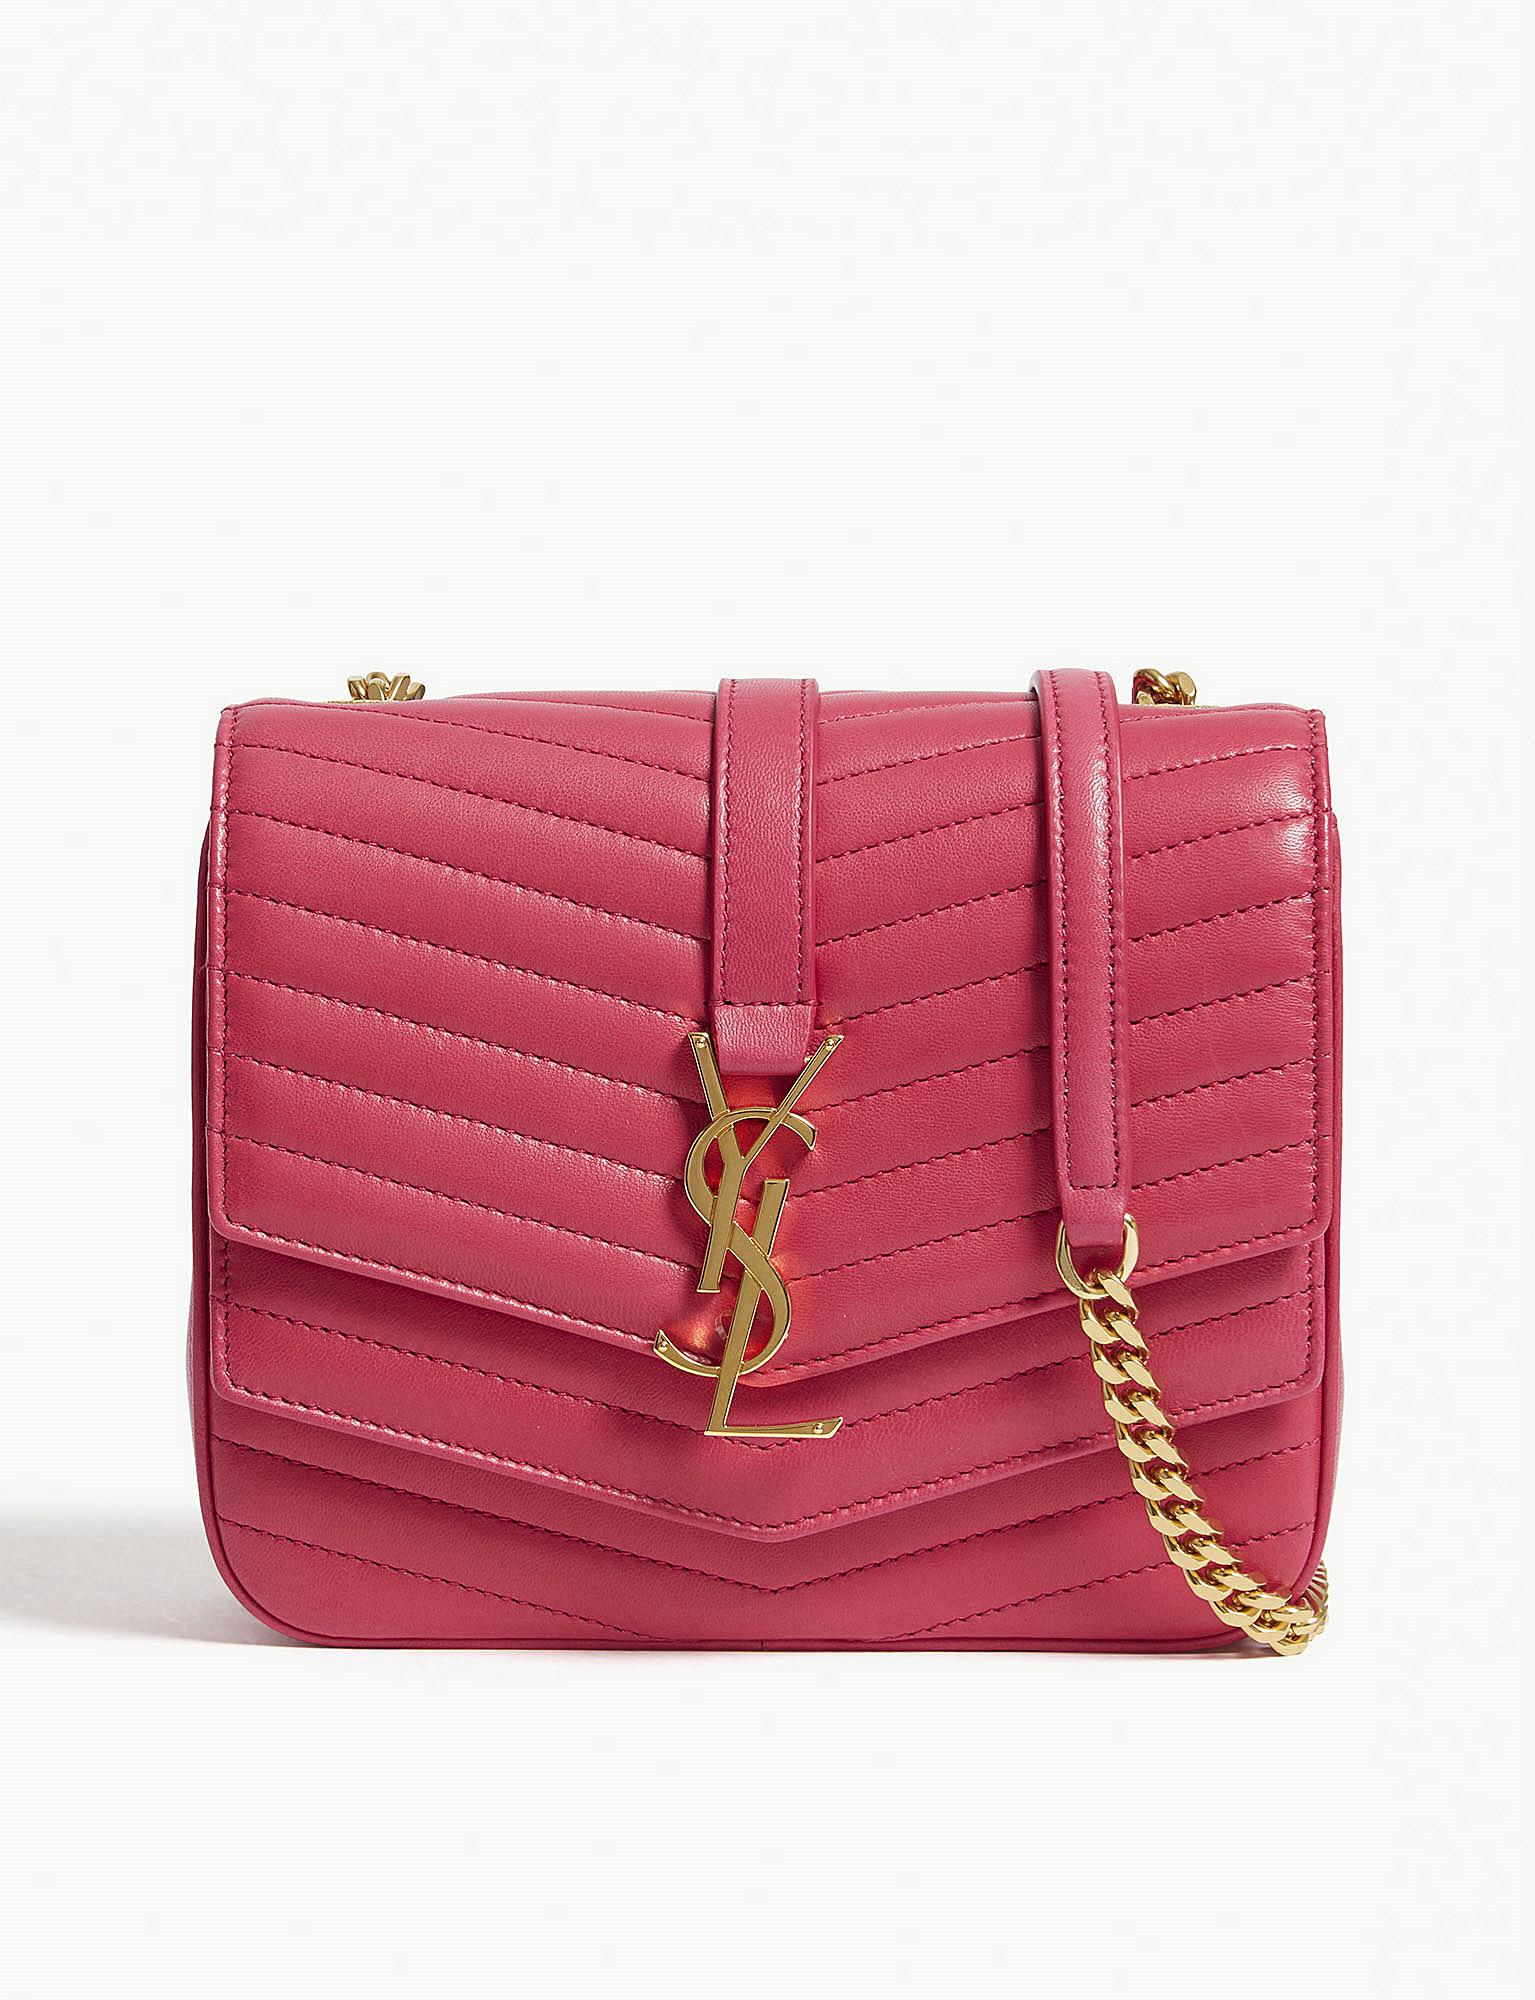 76ae6fef75 Saint Laurent. Women s Pink Sulpice Small Quilted Leather Cross-body Bag